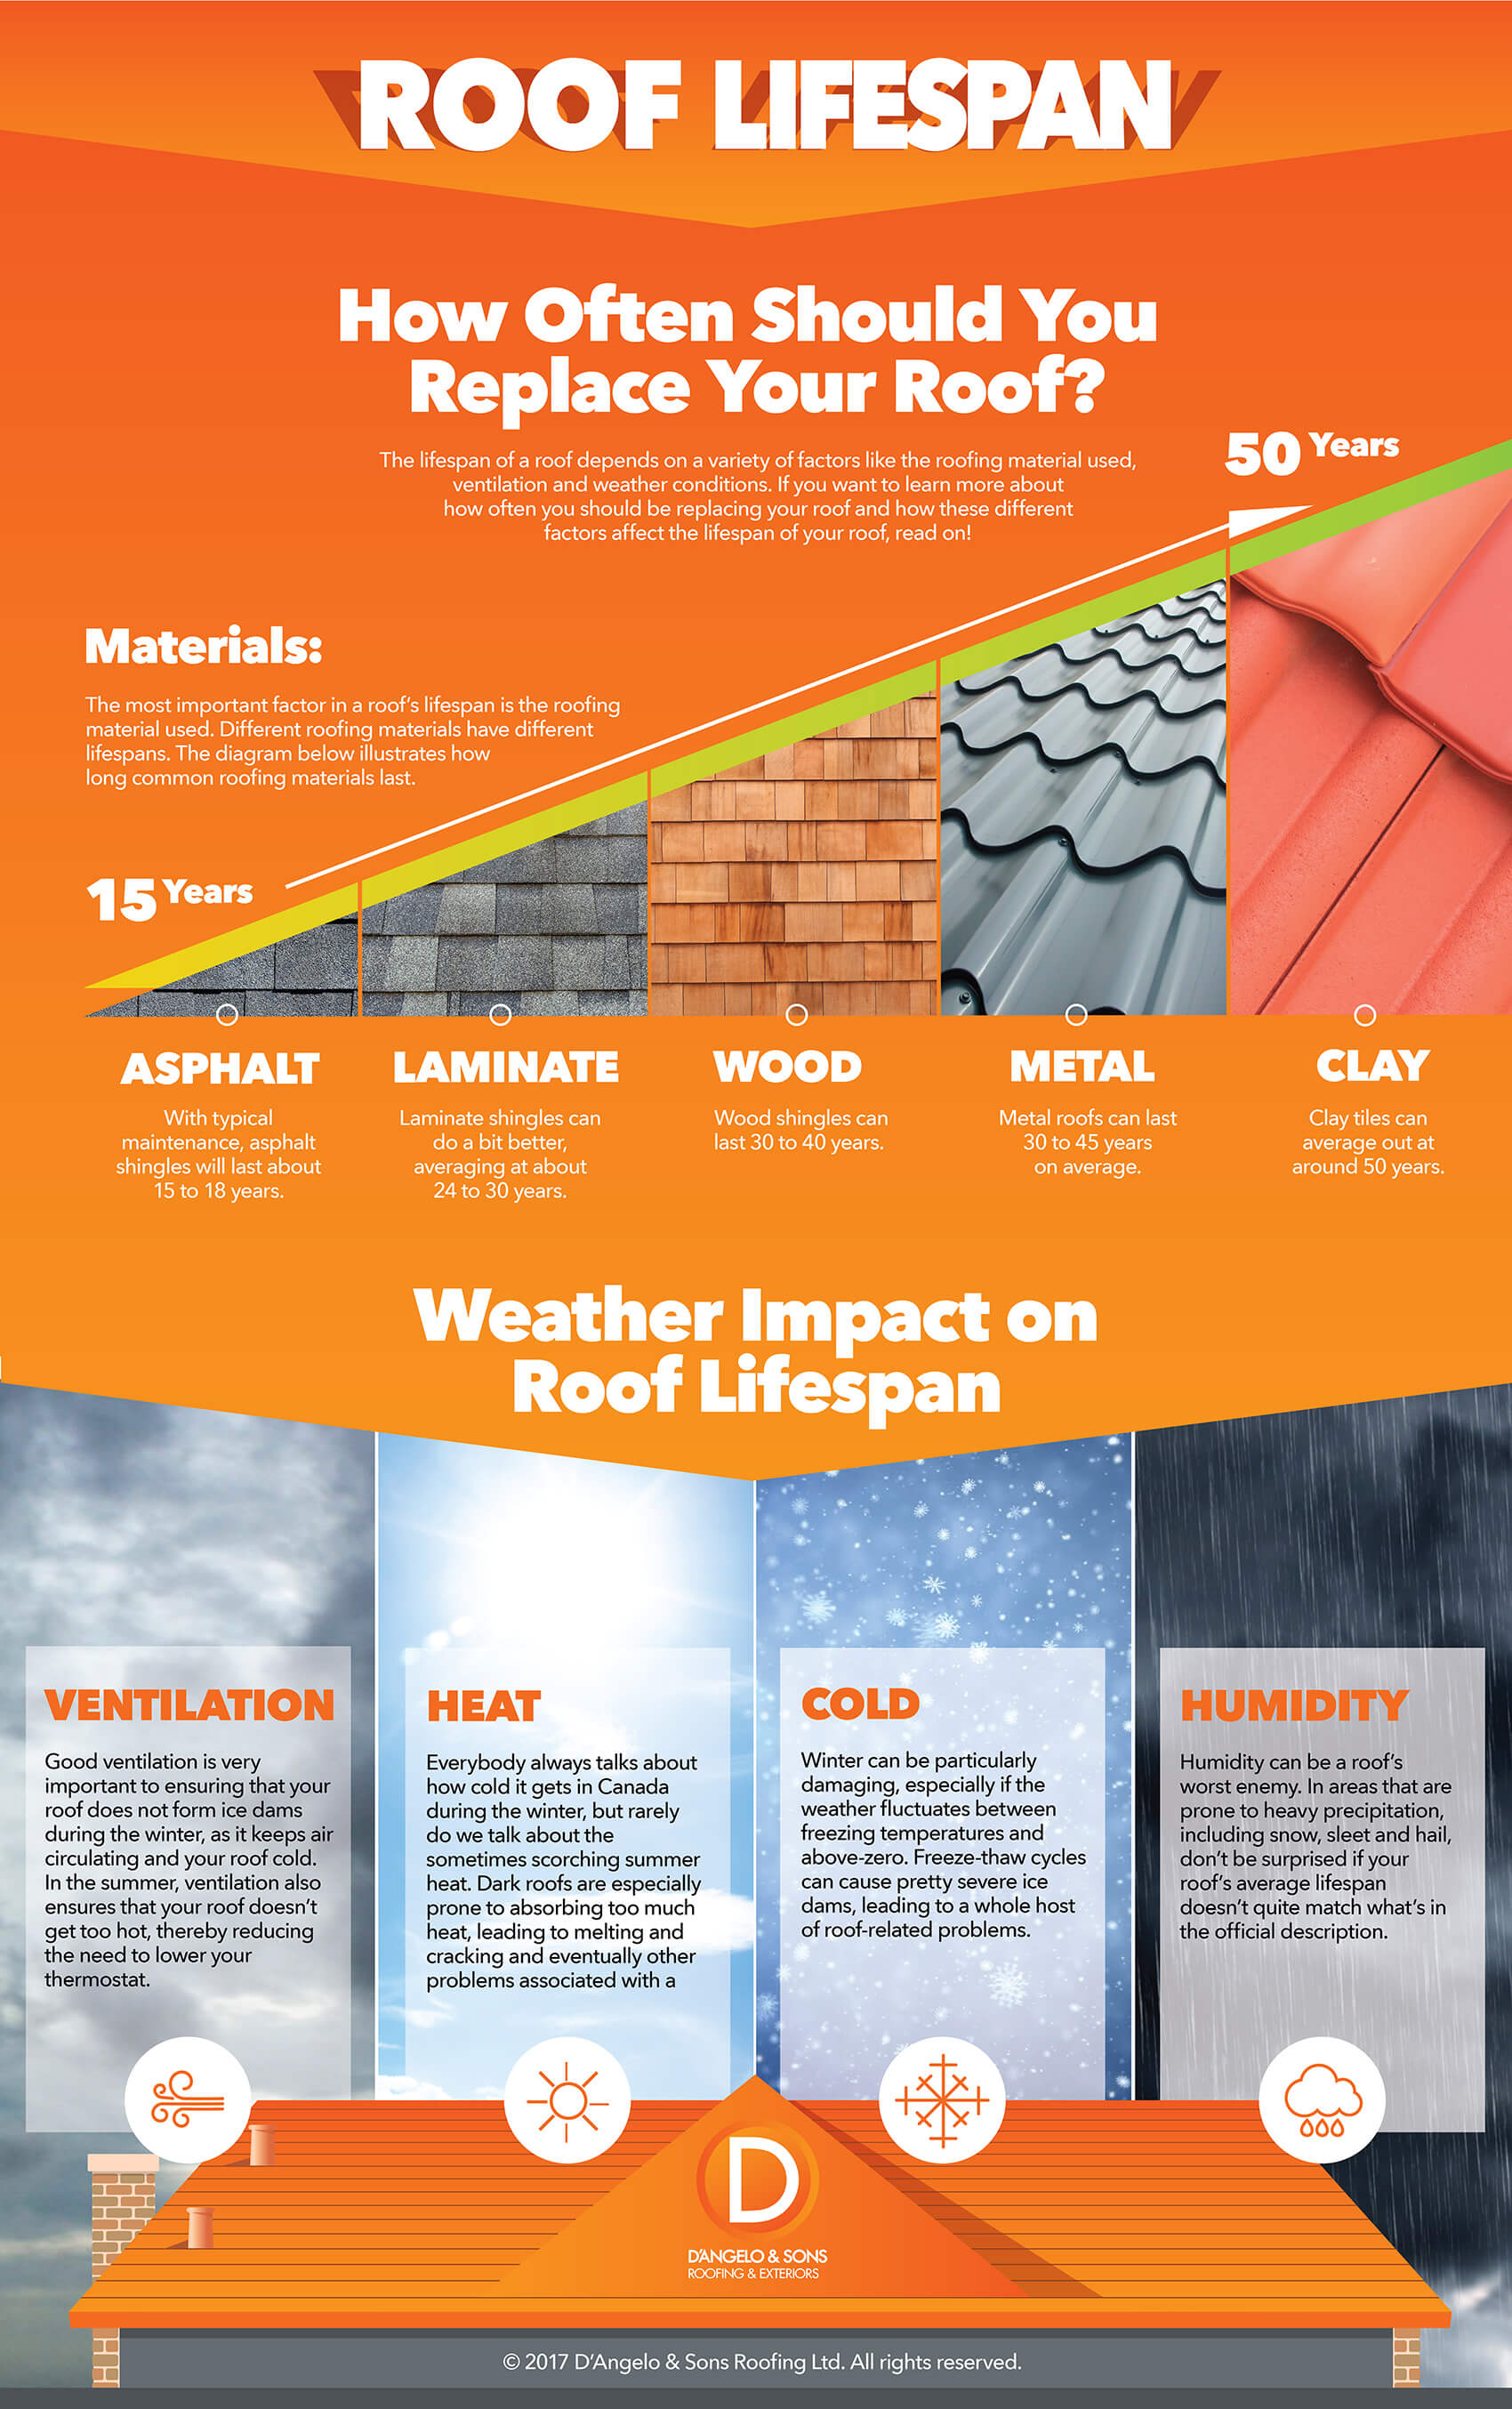 How-often-should-i-replace-roof-infographic-plaza